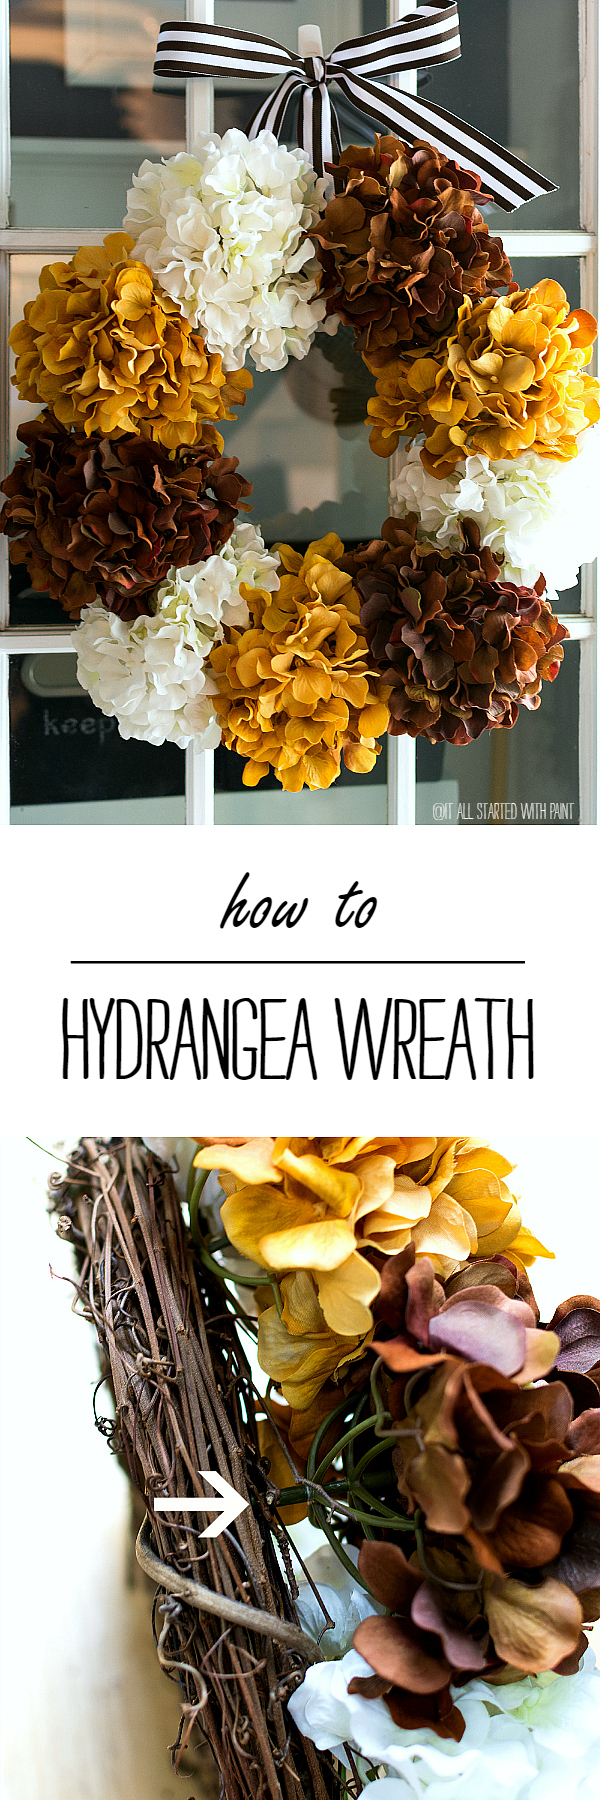 How To Make A Hydrangea Wreath for Fall